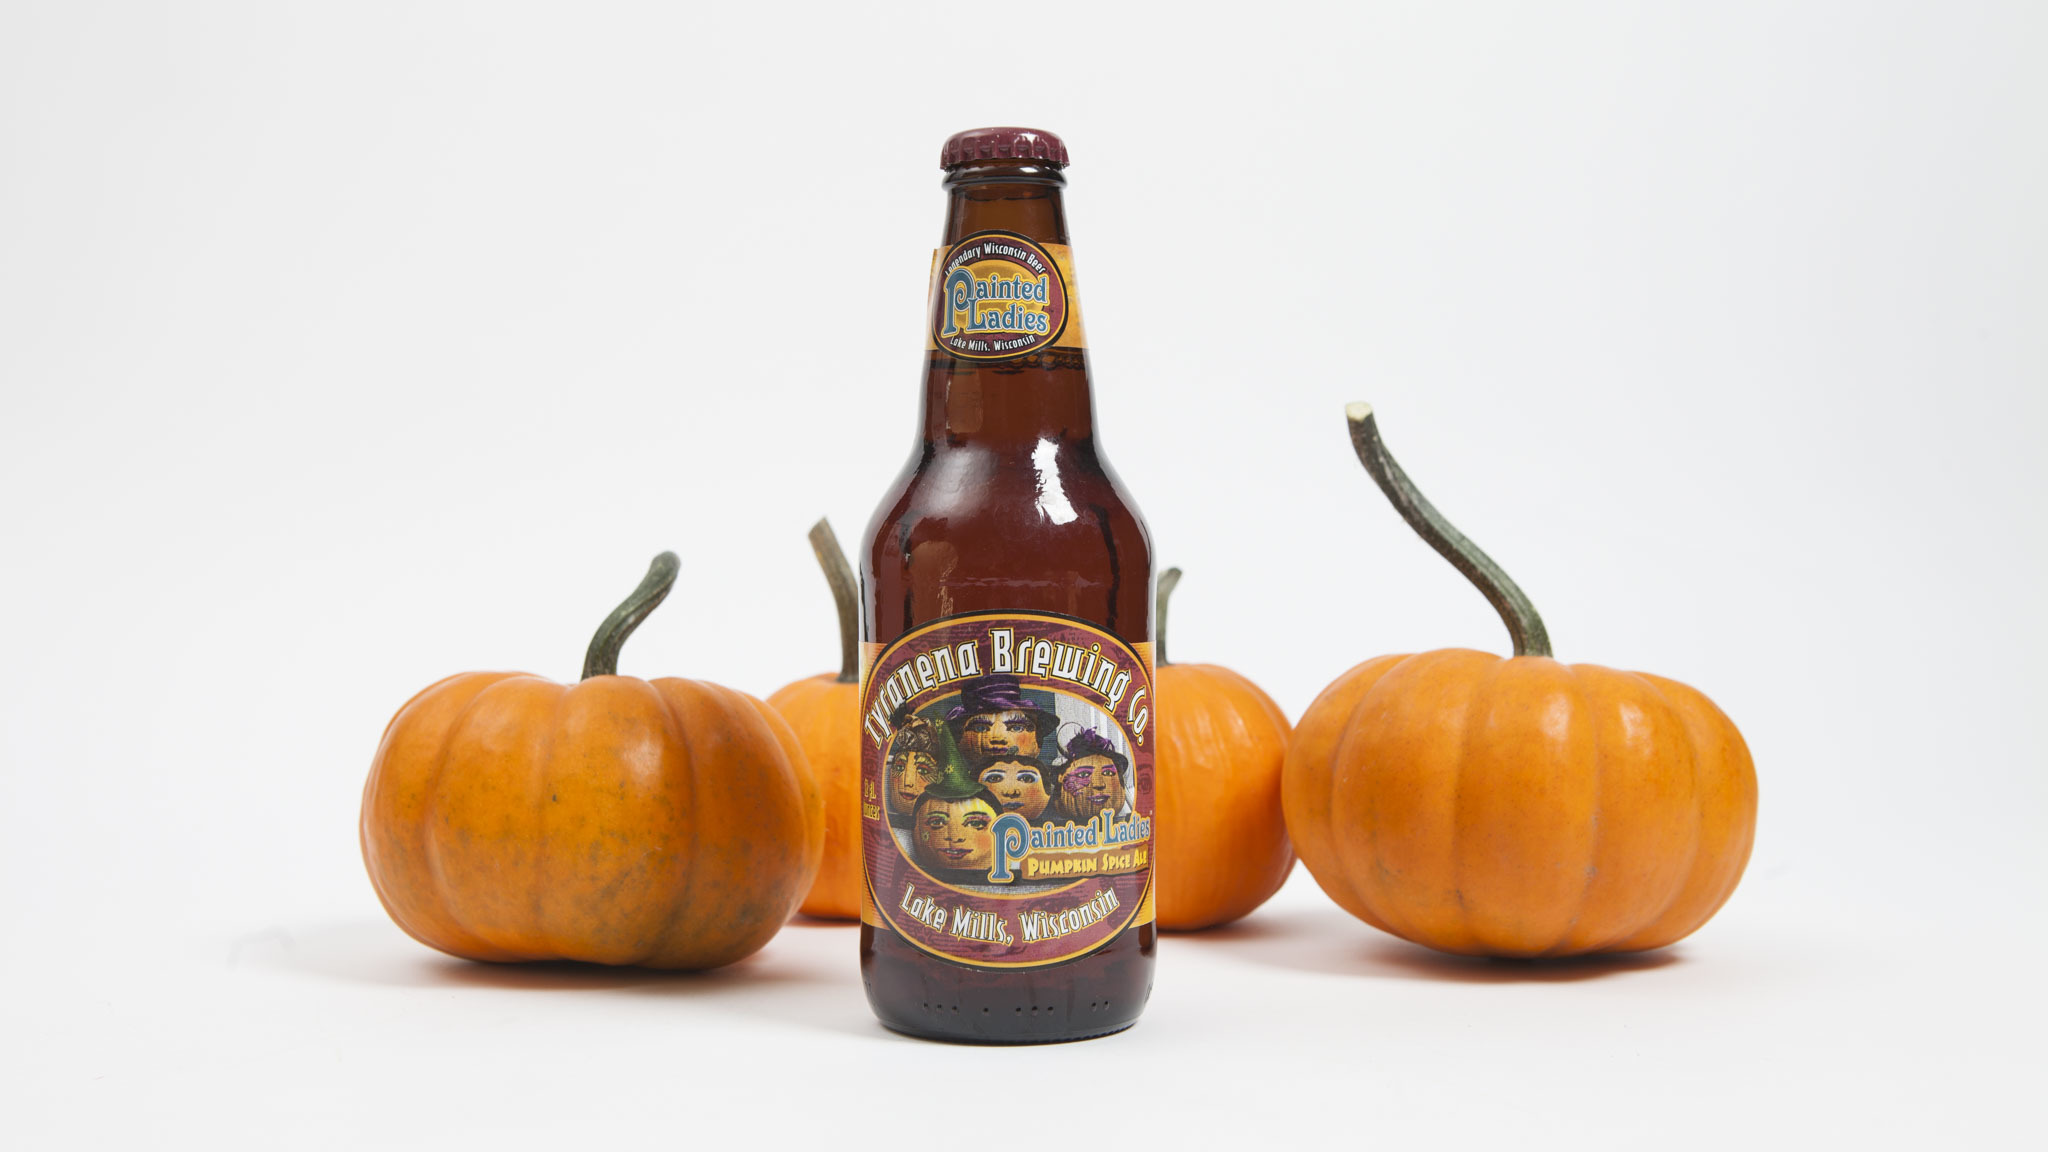 Tyranena Brewing Co. Painted Ladies Pumpkin Spice Ale